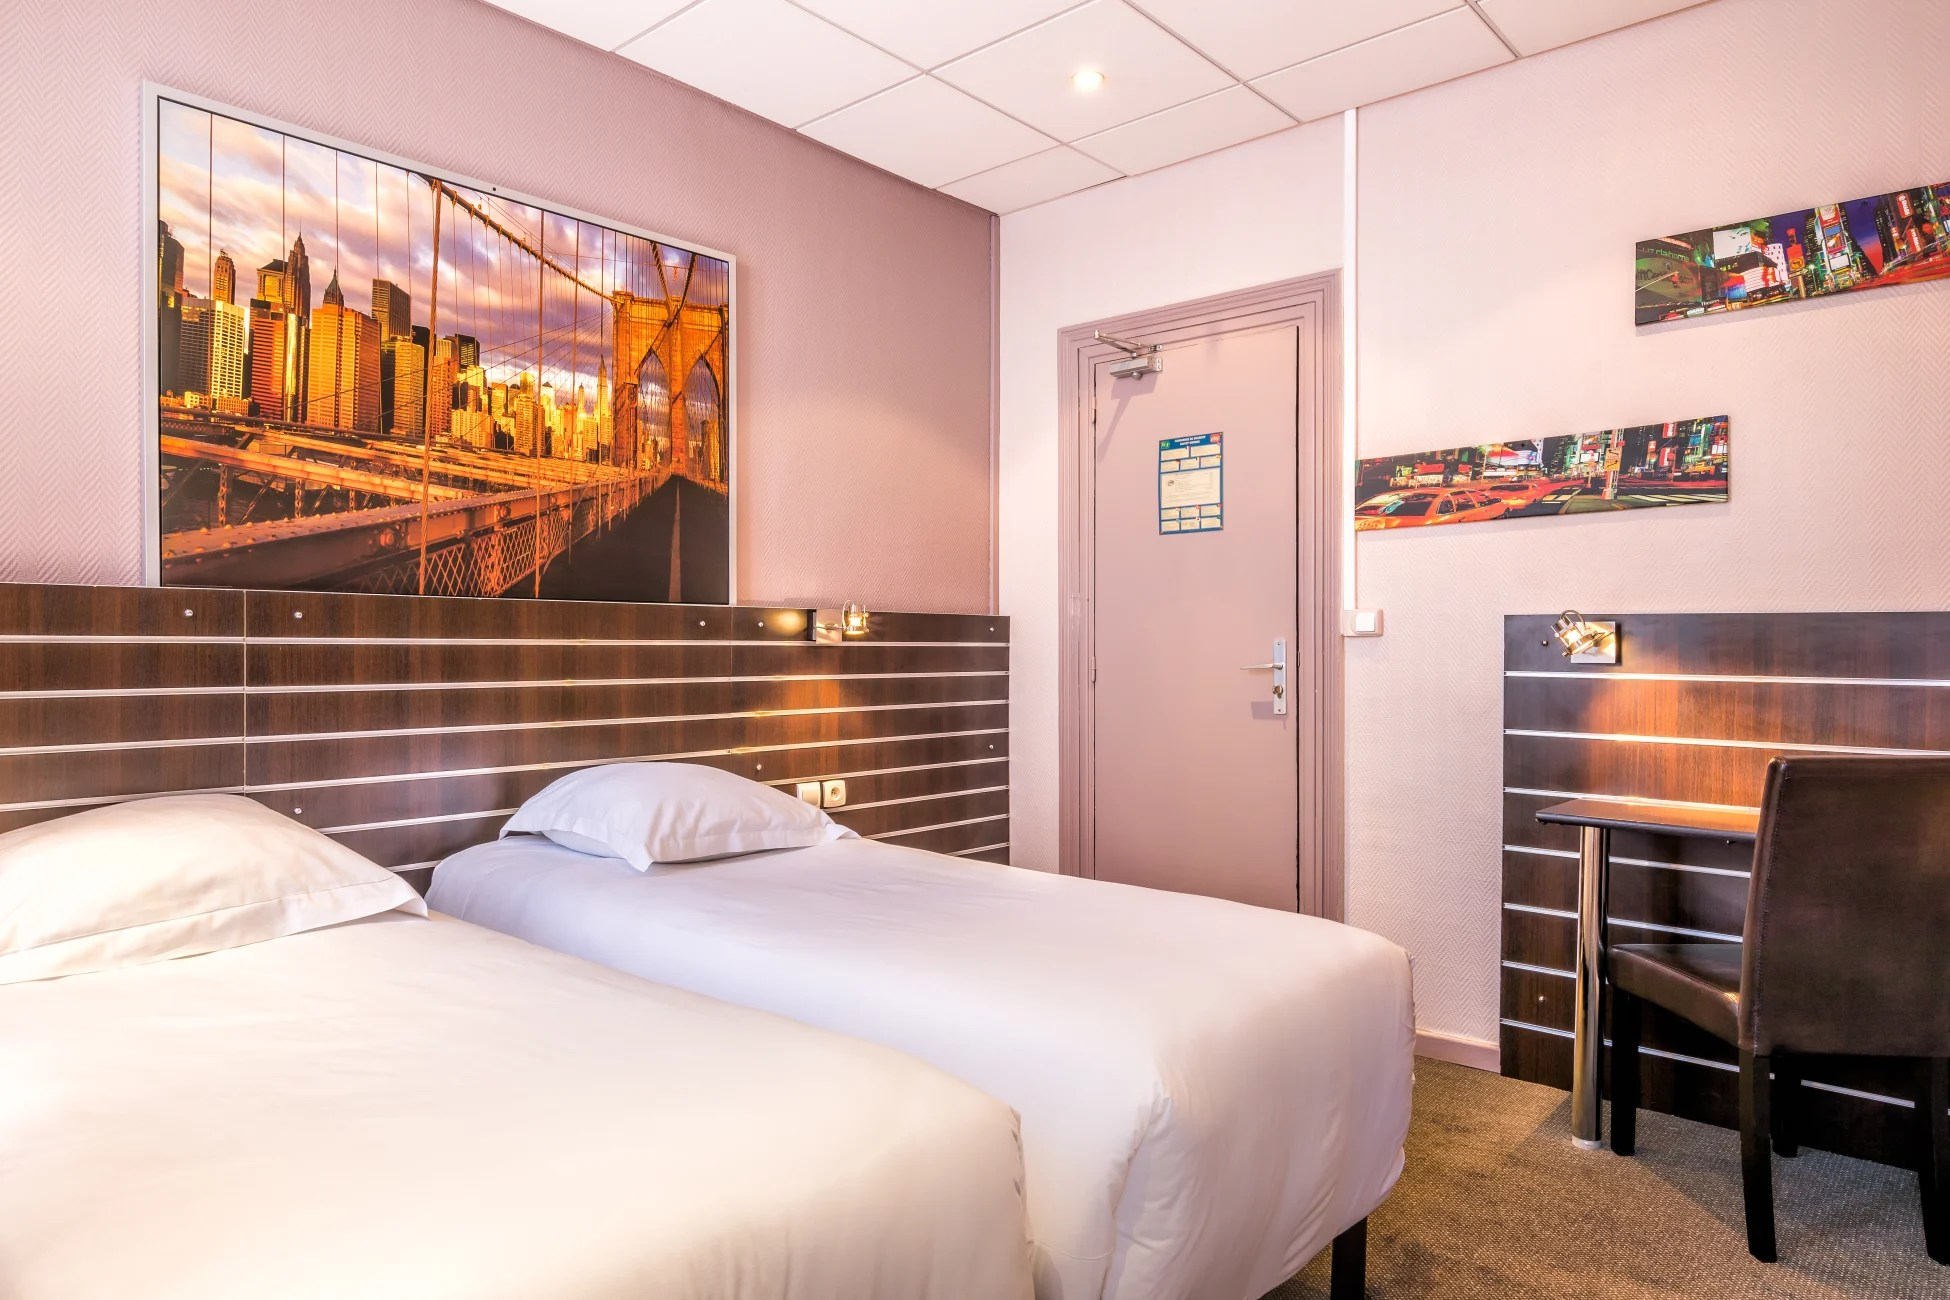 Parking Gare Lille Europe Tarif Hotel Hotel Continental Lille Lille Trivago In